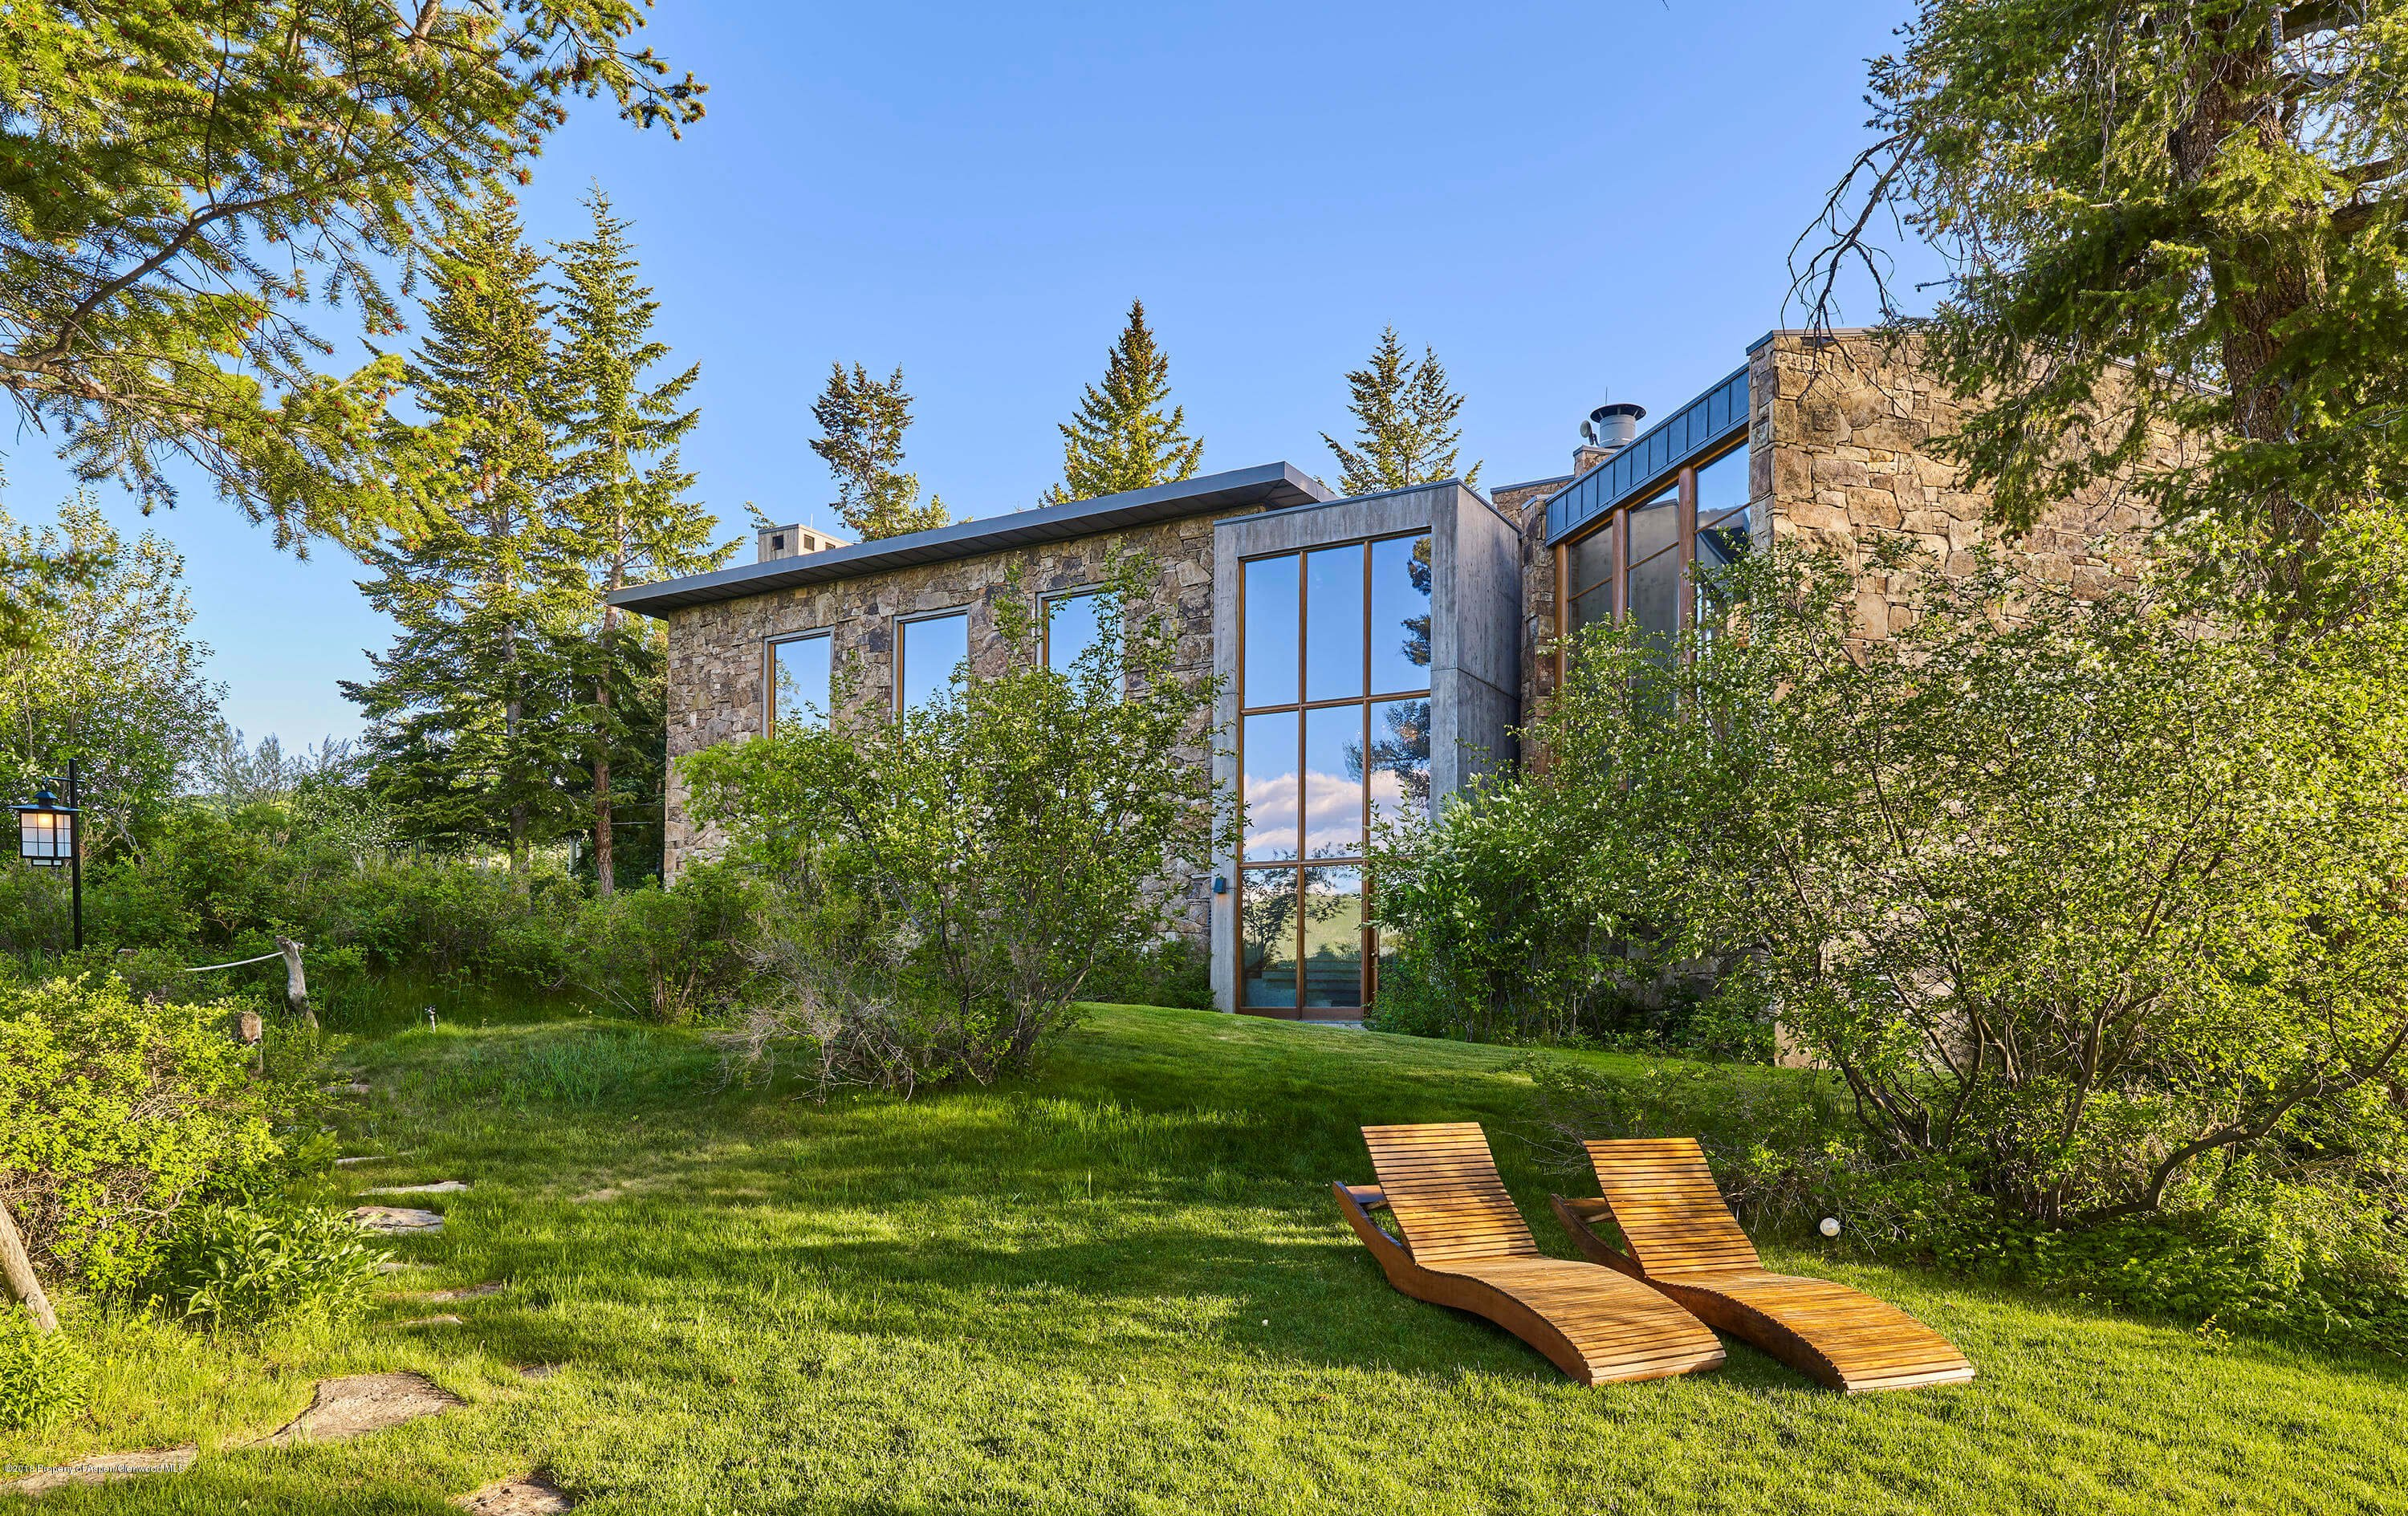 Aspen CO Estate Auction at 350 Eagle Park Goes UC at $9.5M Plus 12% Buyers Premium w/$2M Furnishing Incl. Image